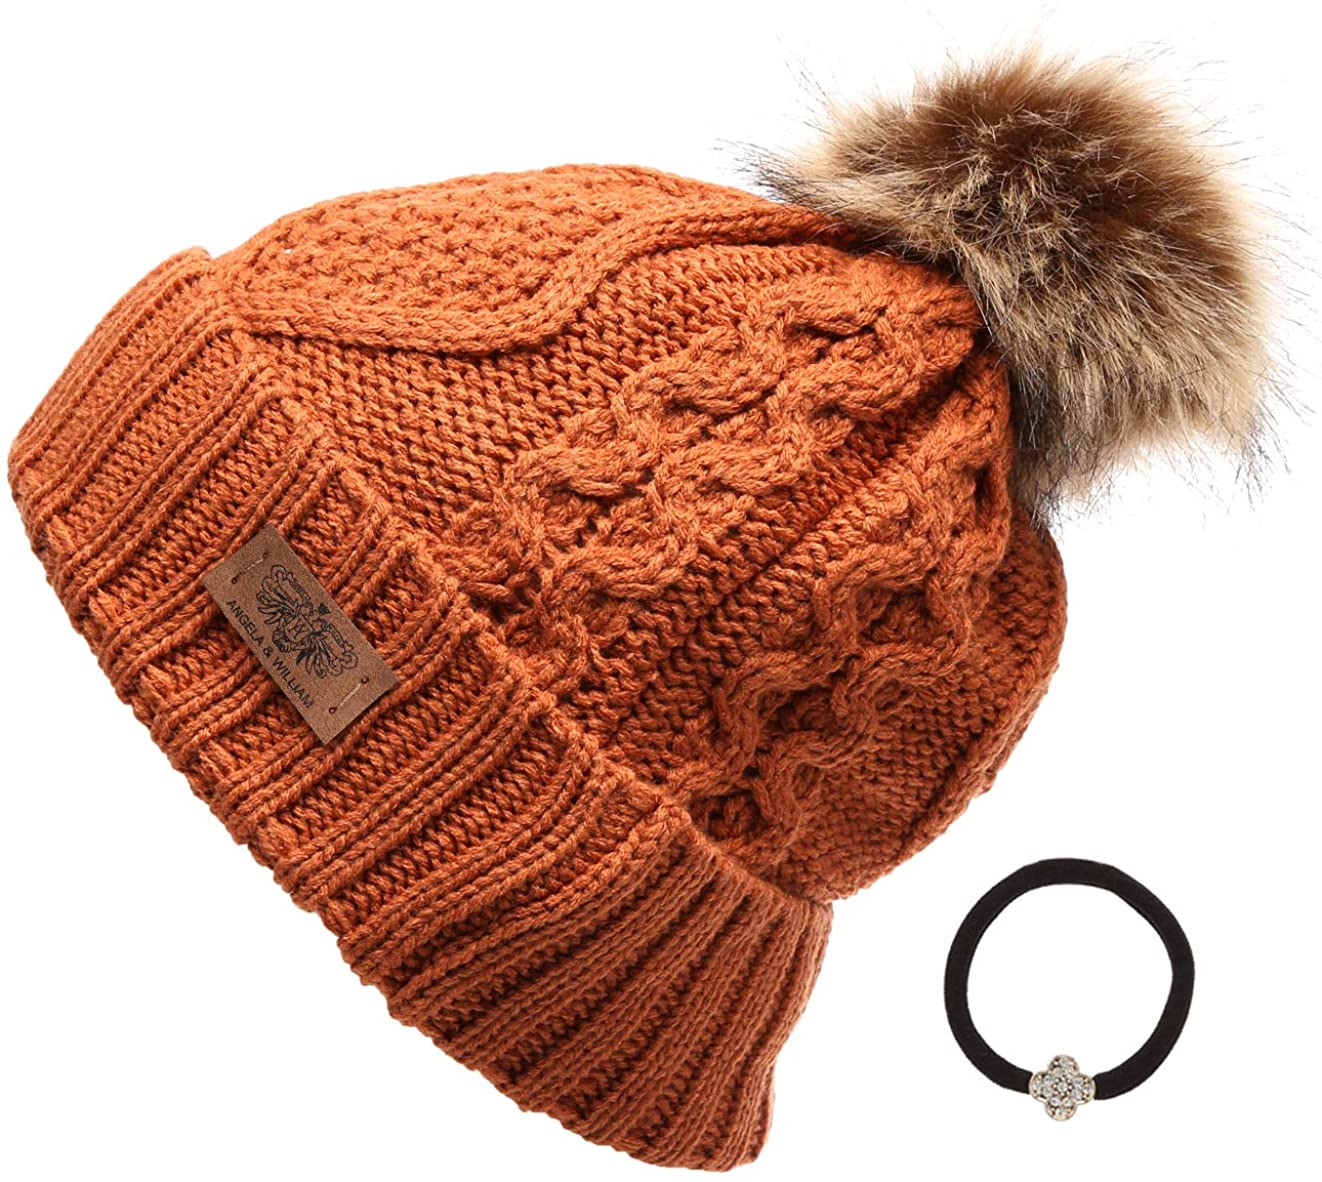 ANGELA & WILLIAM Women's Winter Fleece Lined Cable Knitted Pom Pom Beanie Hat with Hair Tie.